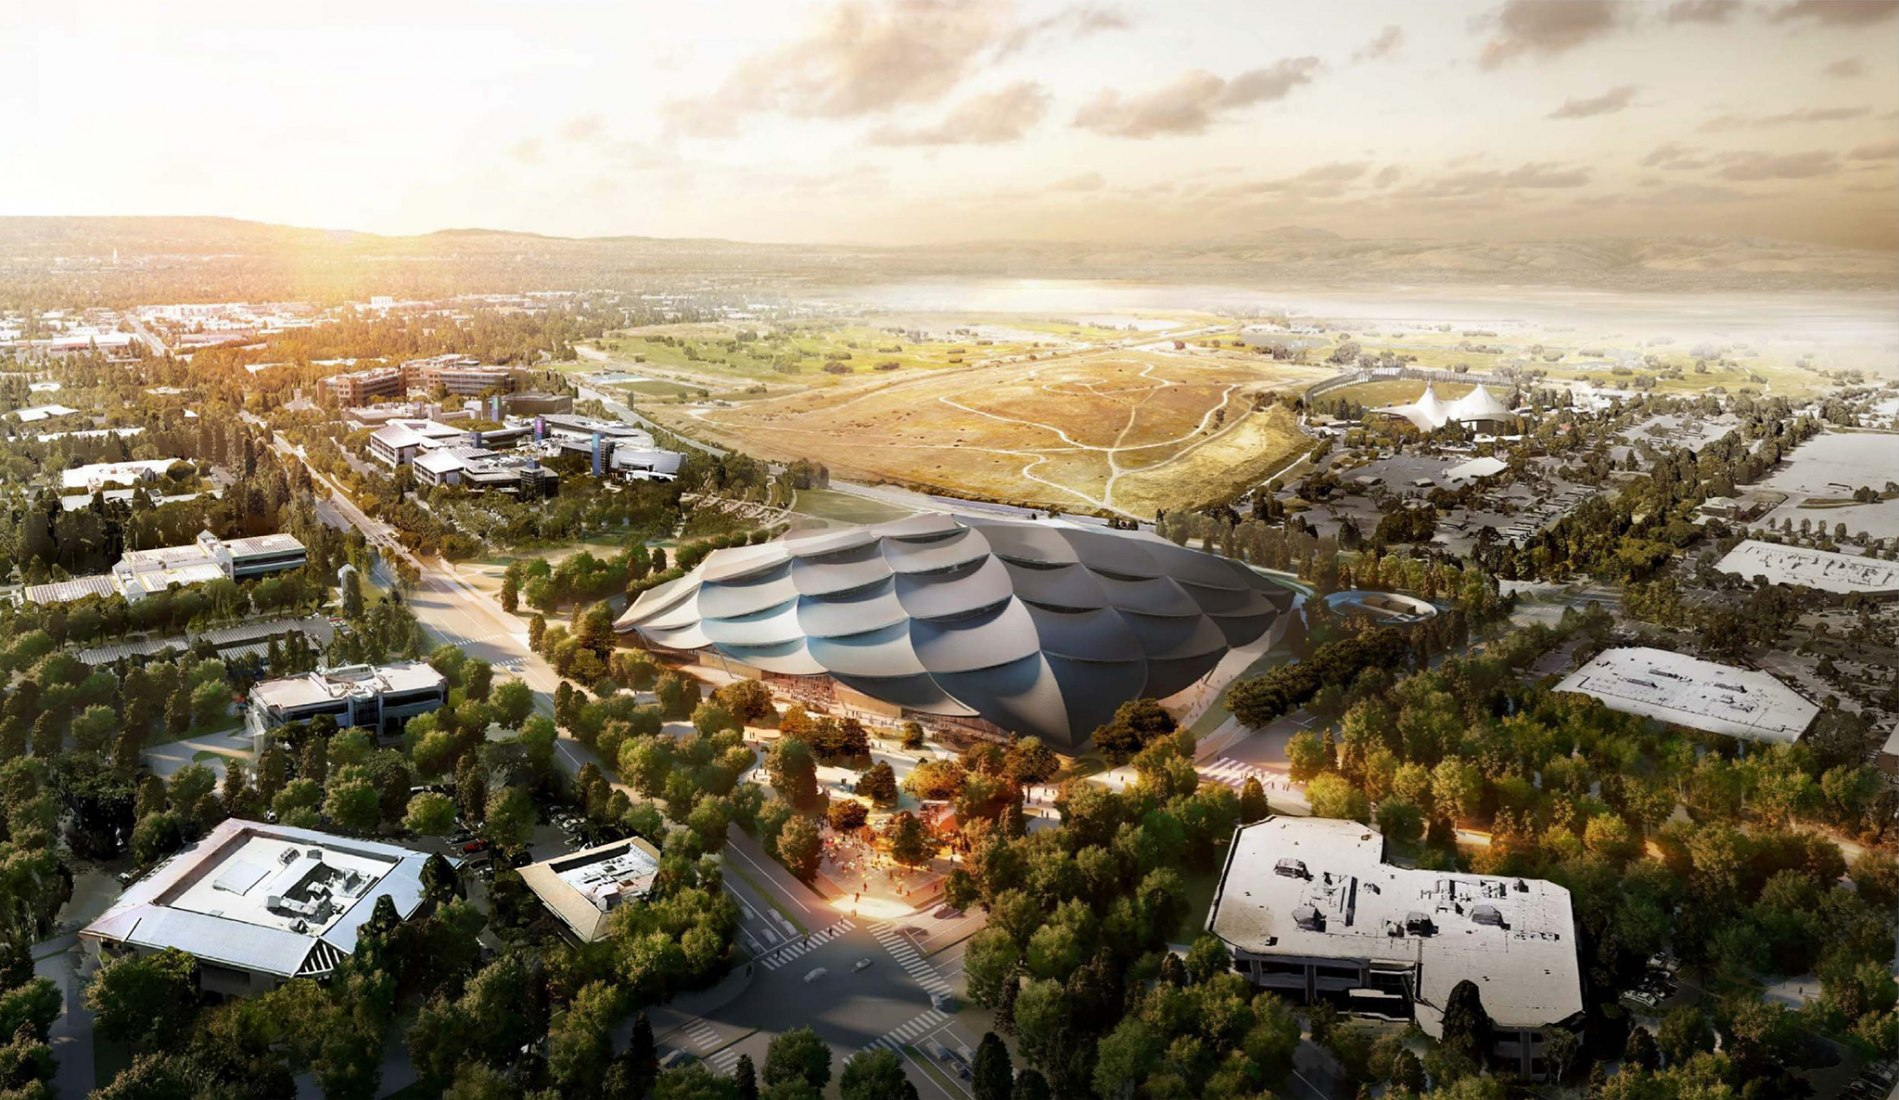 Rendering. New Plans for Google's New Headquarters in California by BIG and Heatherwick